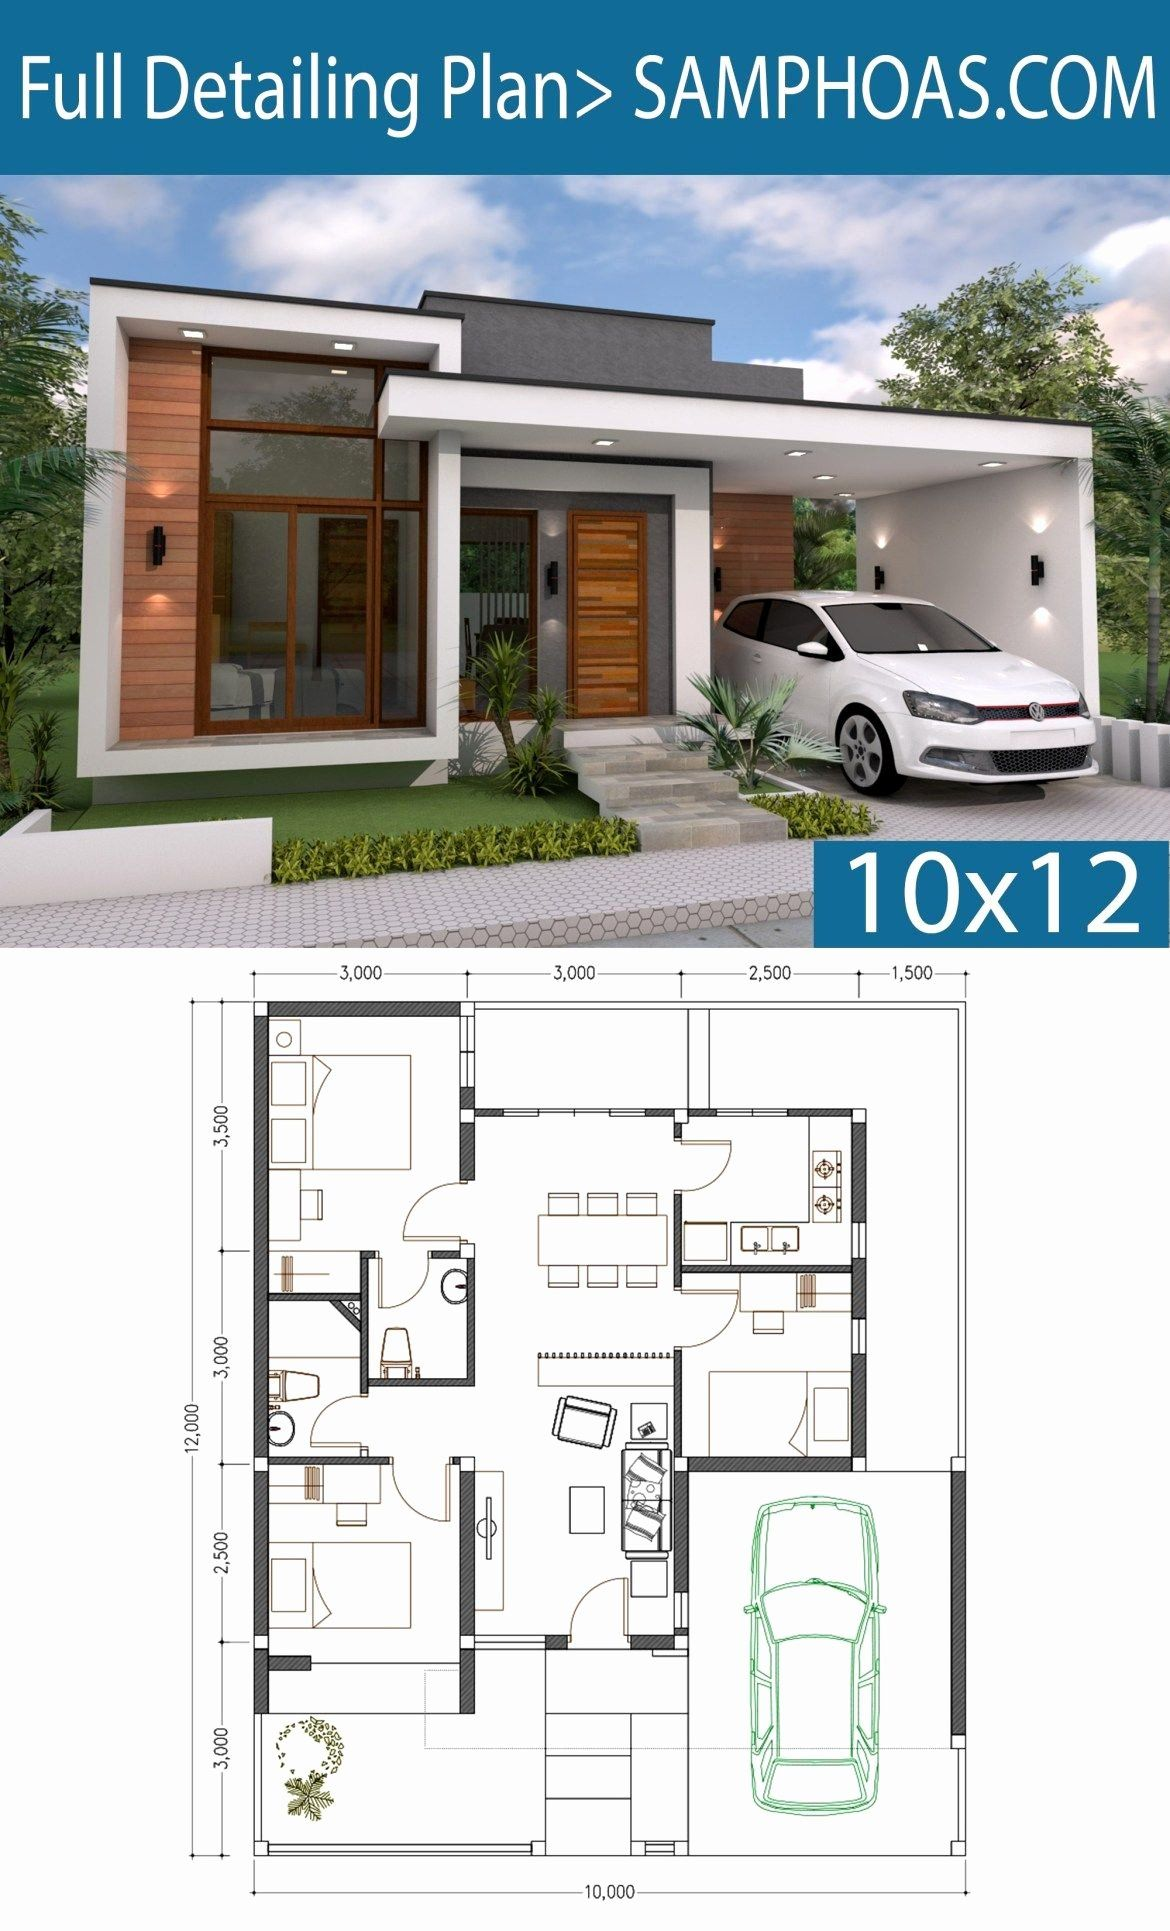 Low Budget Modern 3 Bedroom House Design Elegant 3 Bedrooms Home Design Plan 10x12m In 2020 Bungalow House Plans Simple House Design Modern Style House Plans